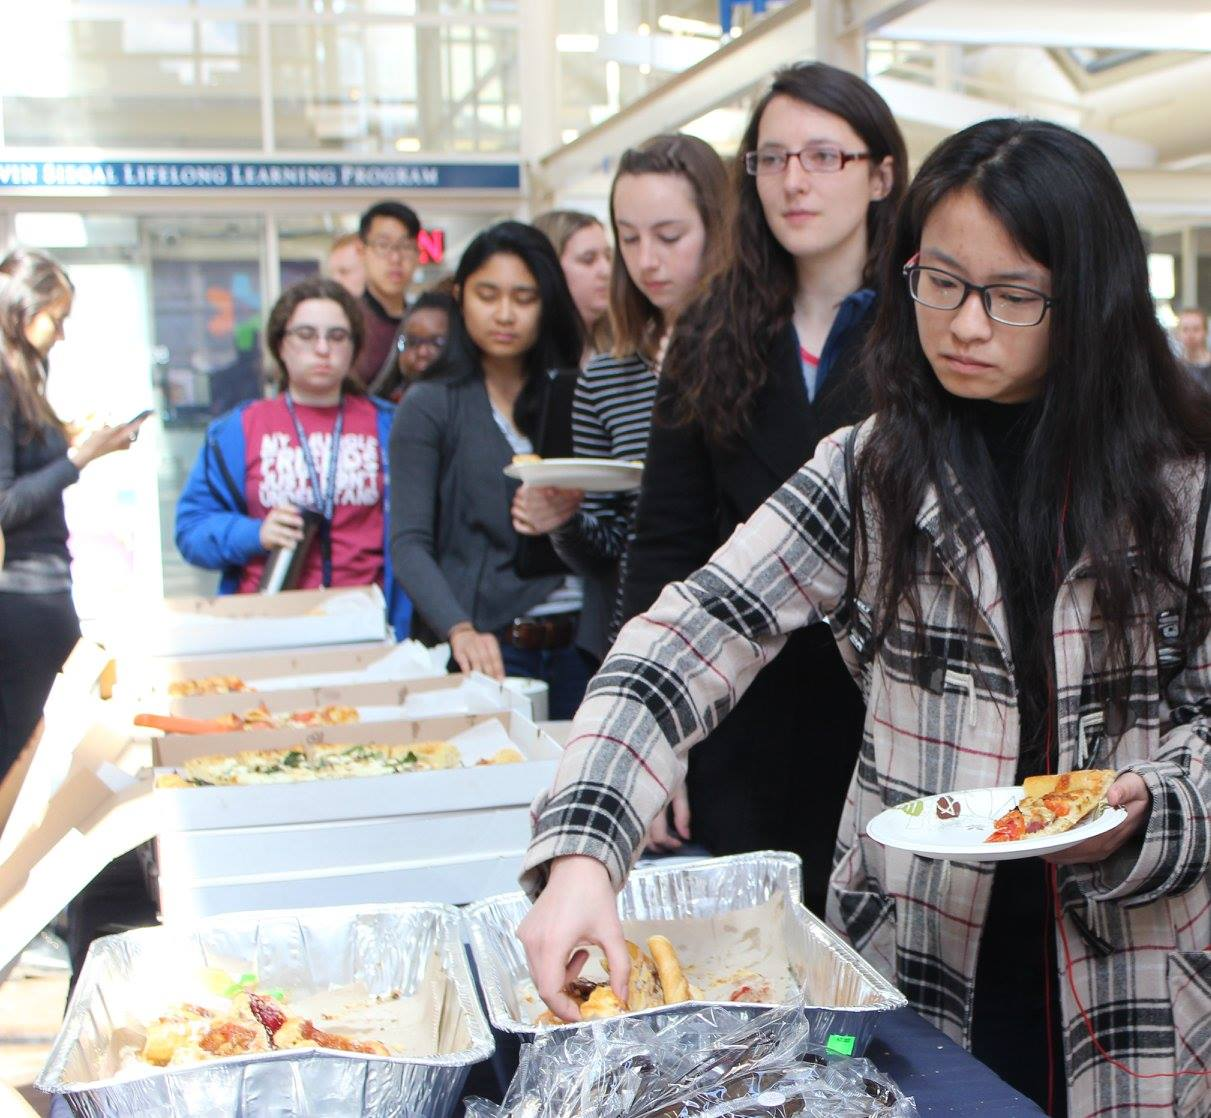 The Food Recovery Network co-sponsored Thwing Tuesday, and served food that would have otherwise been wasted.